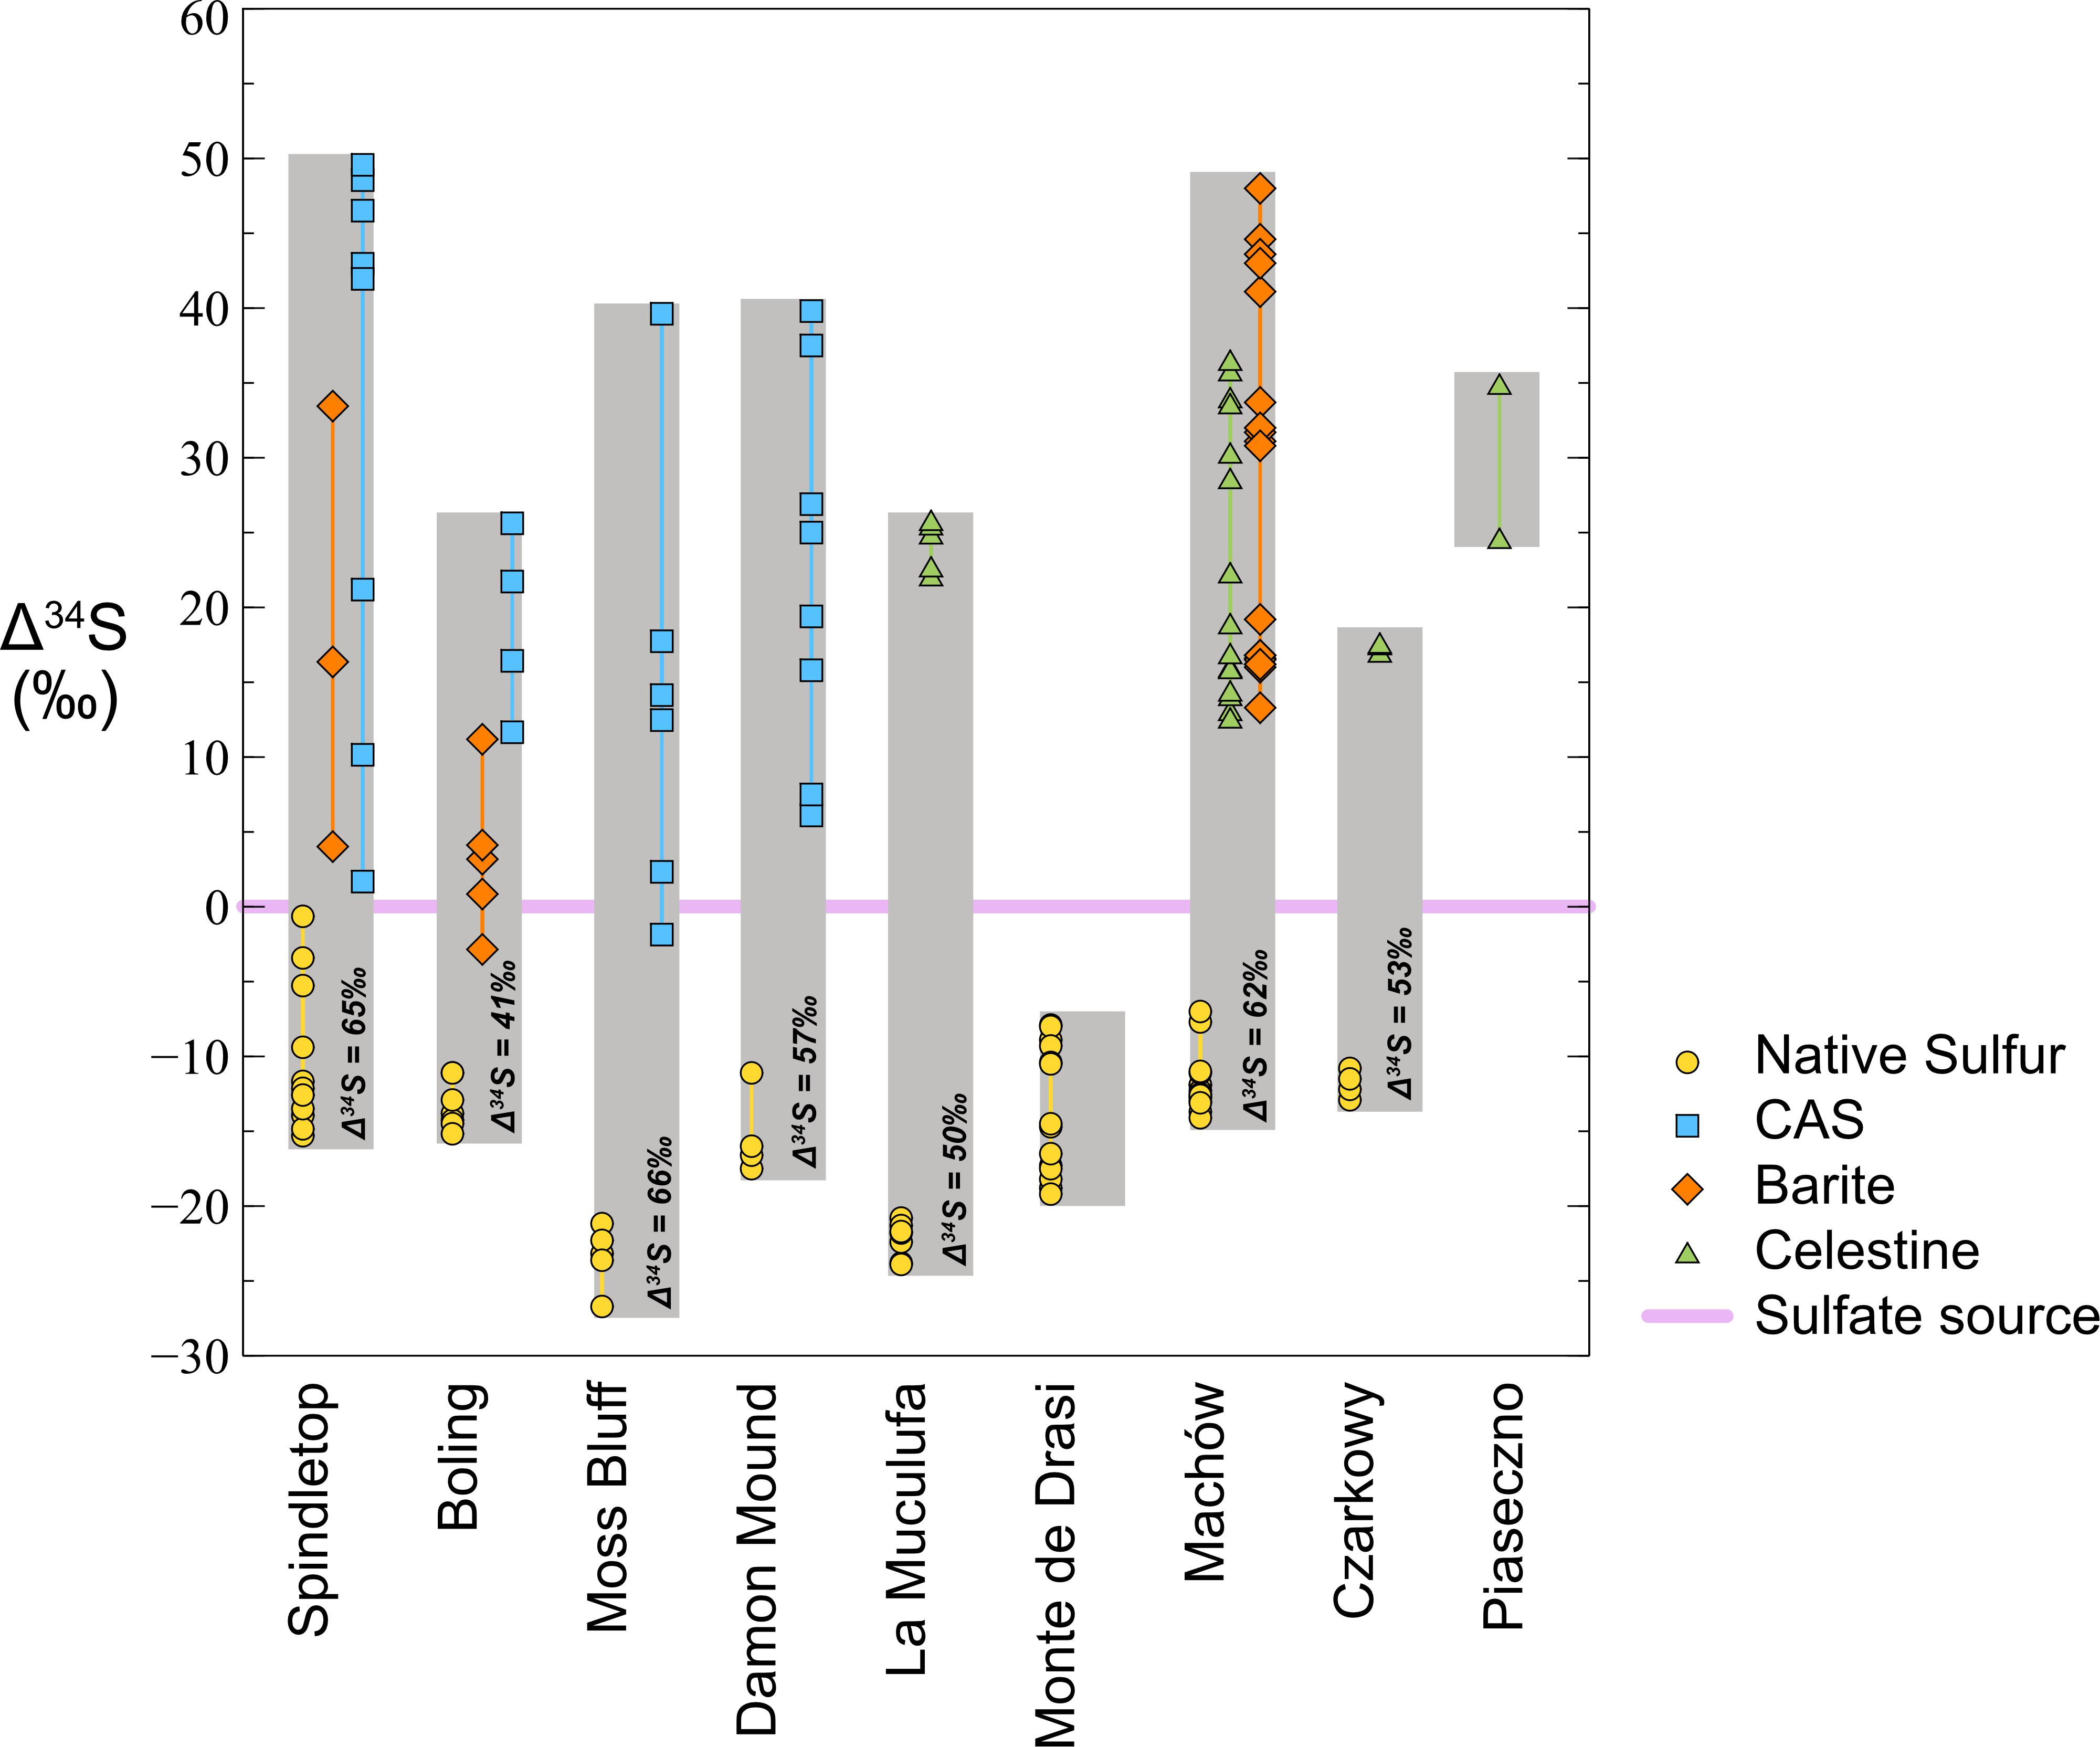 Frontiers | Formation of Large Native Sulfur Deposits Does